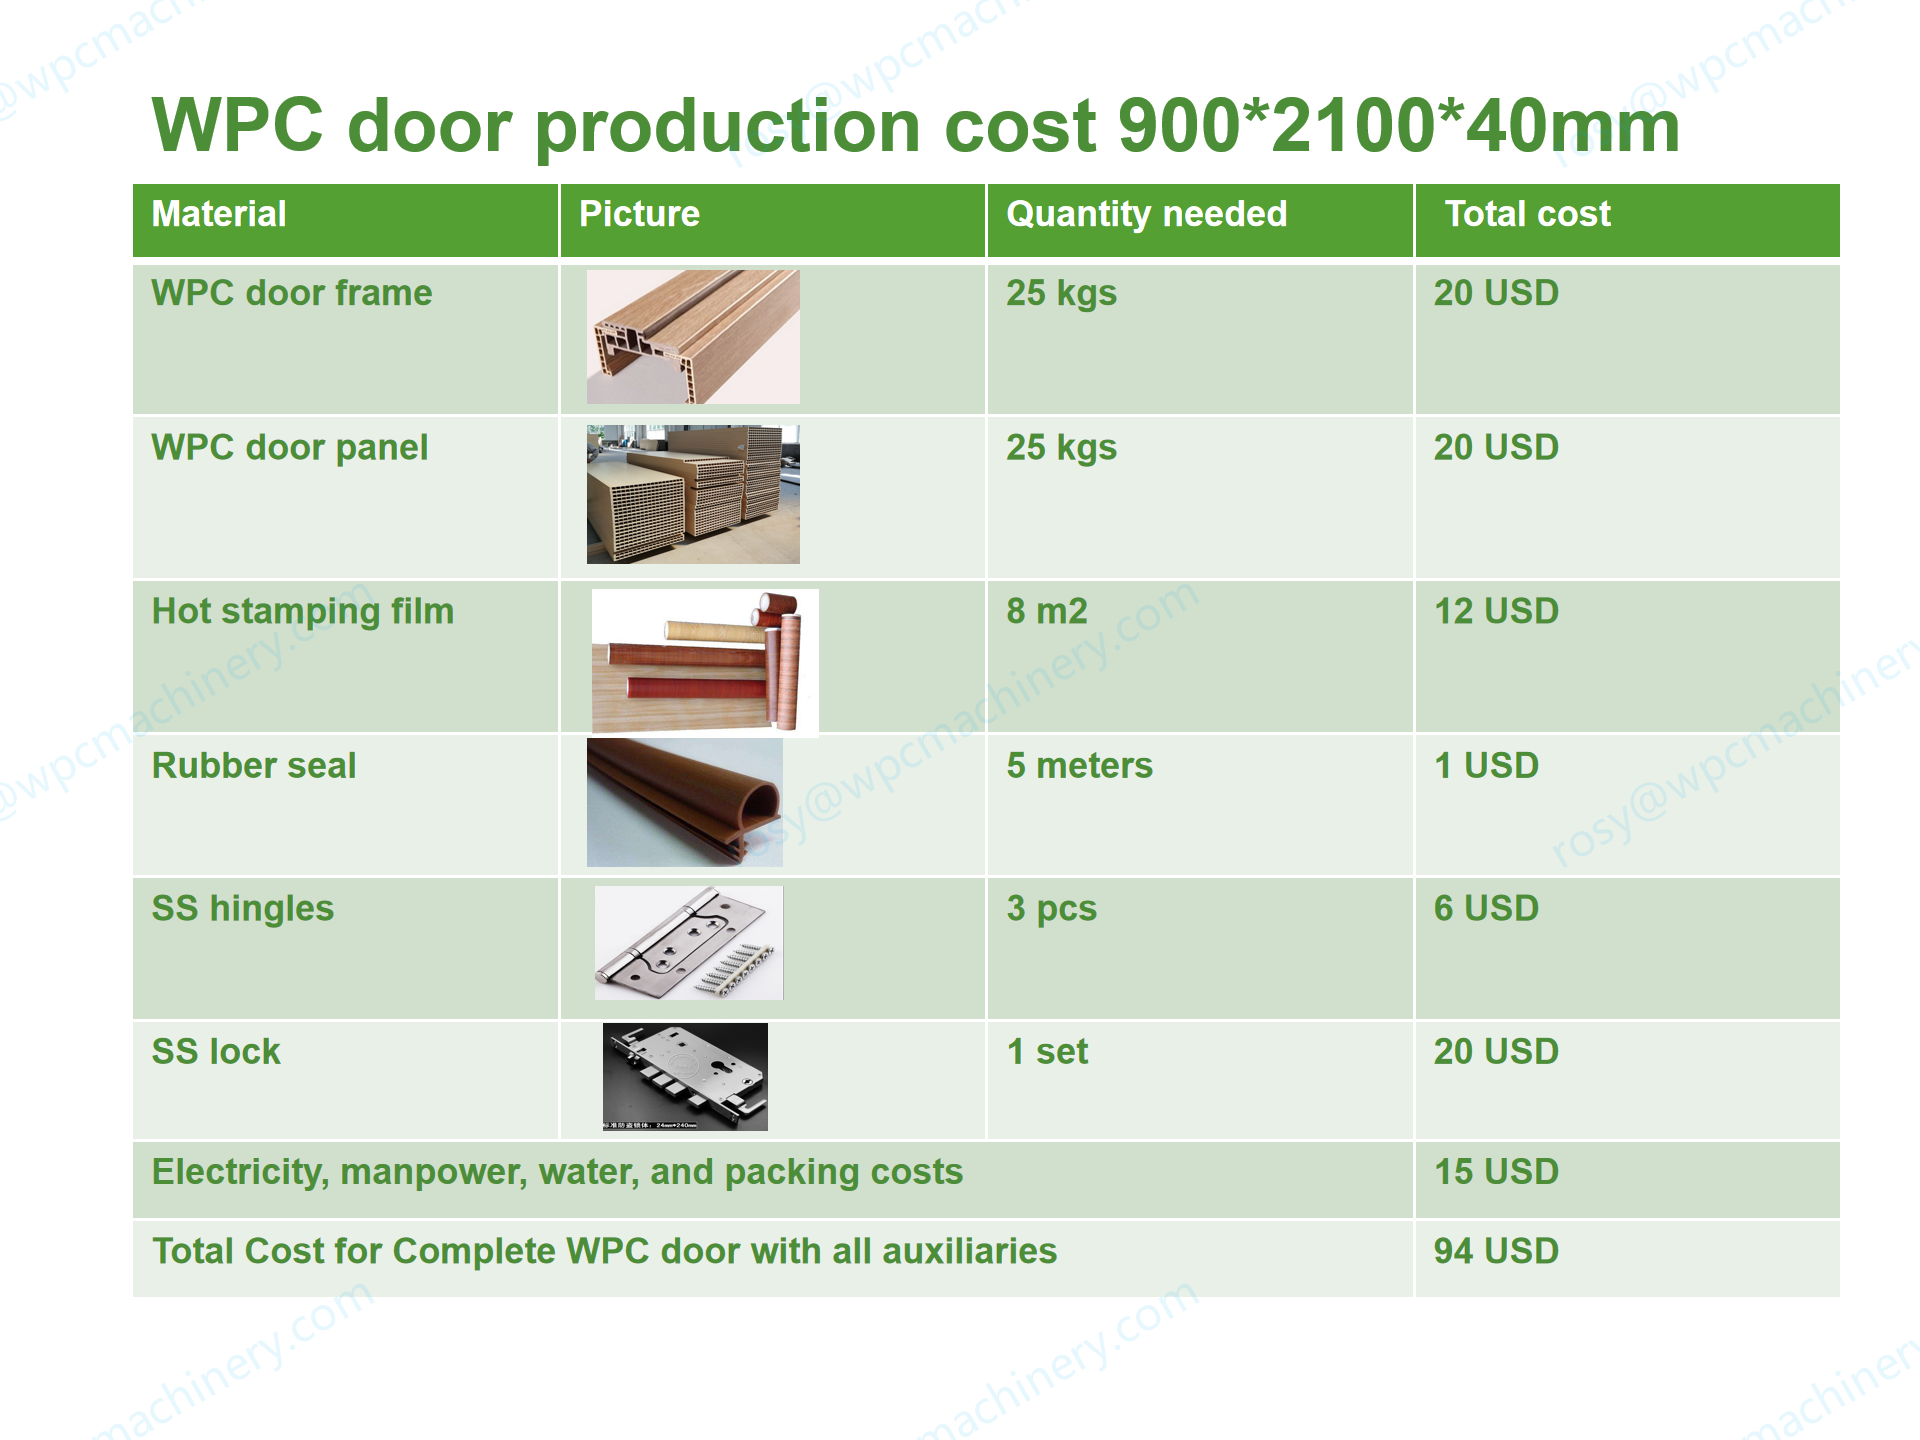 wpc door production cost